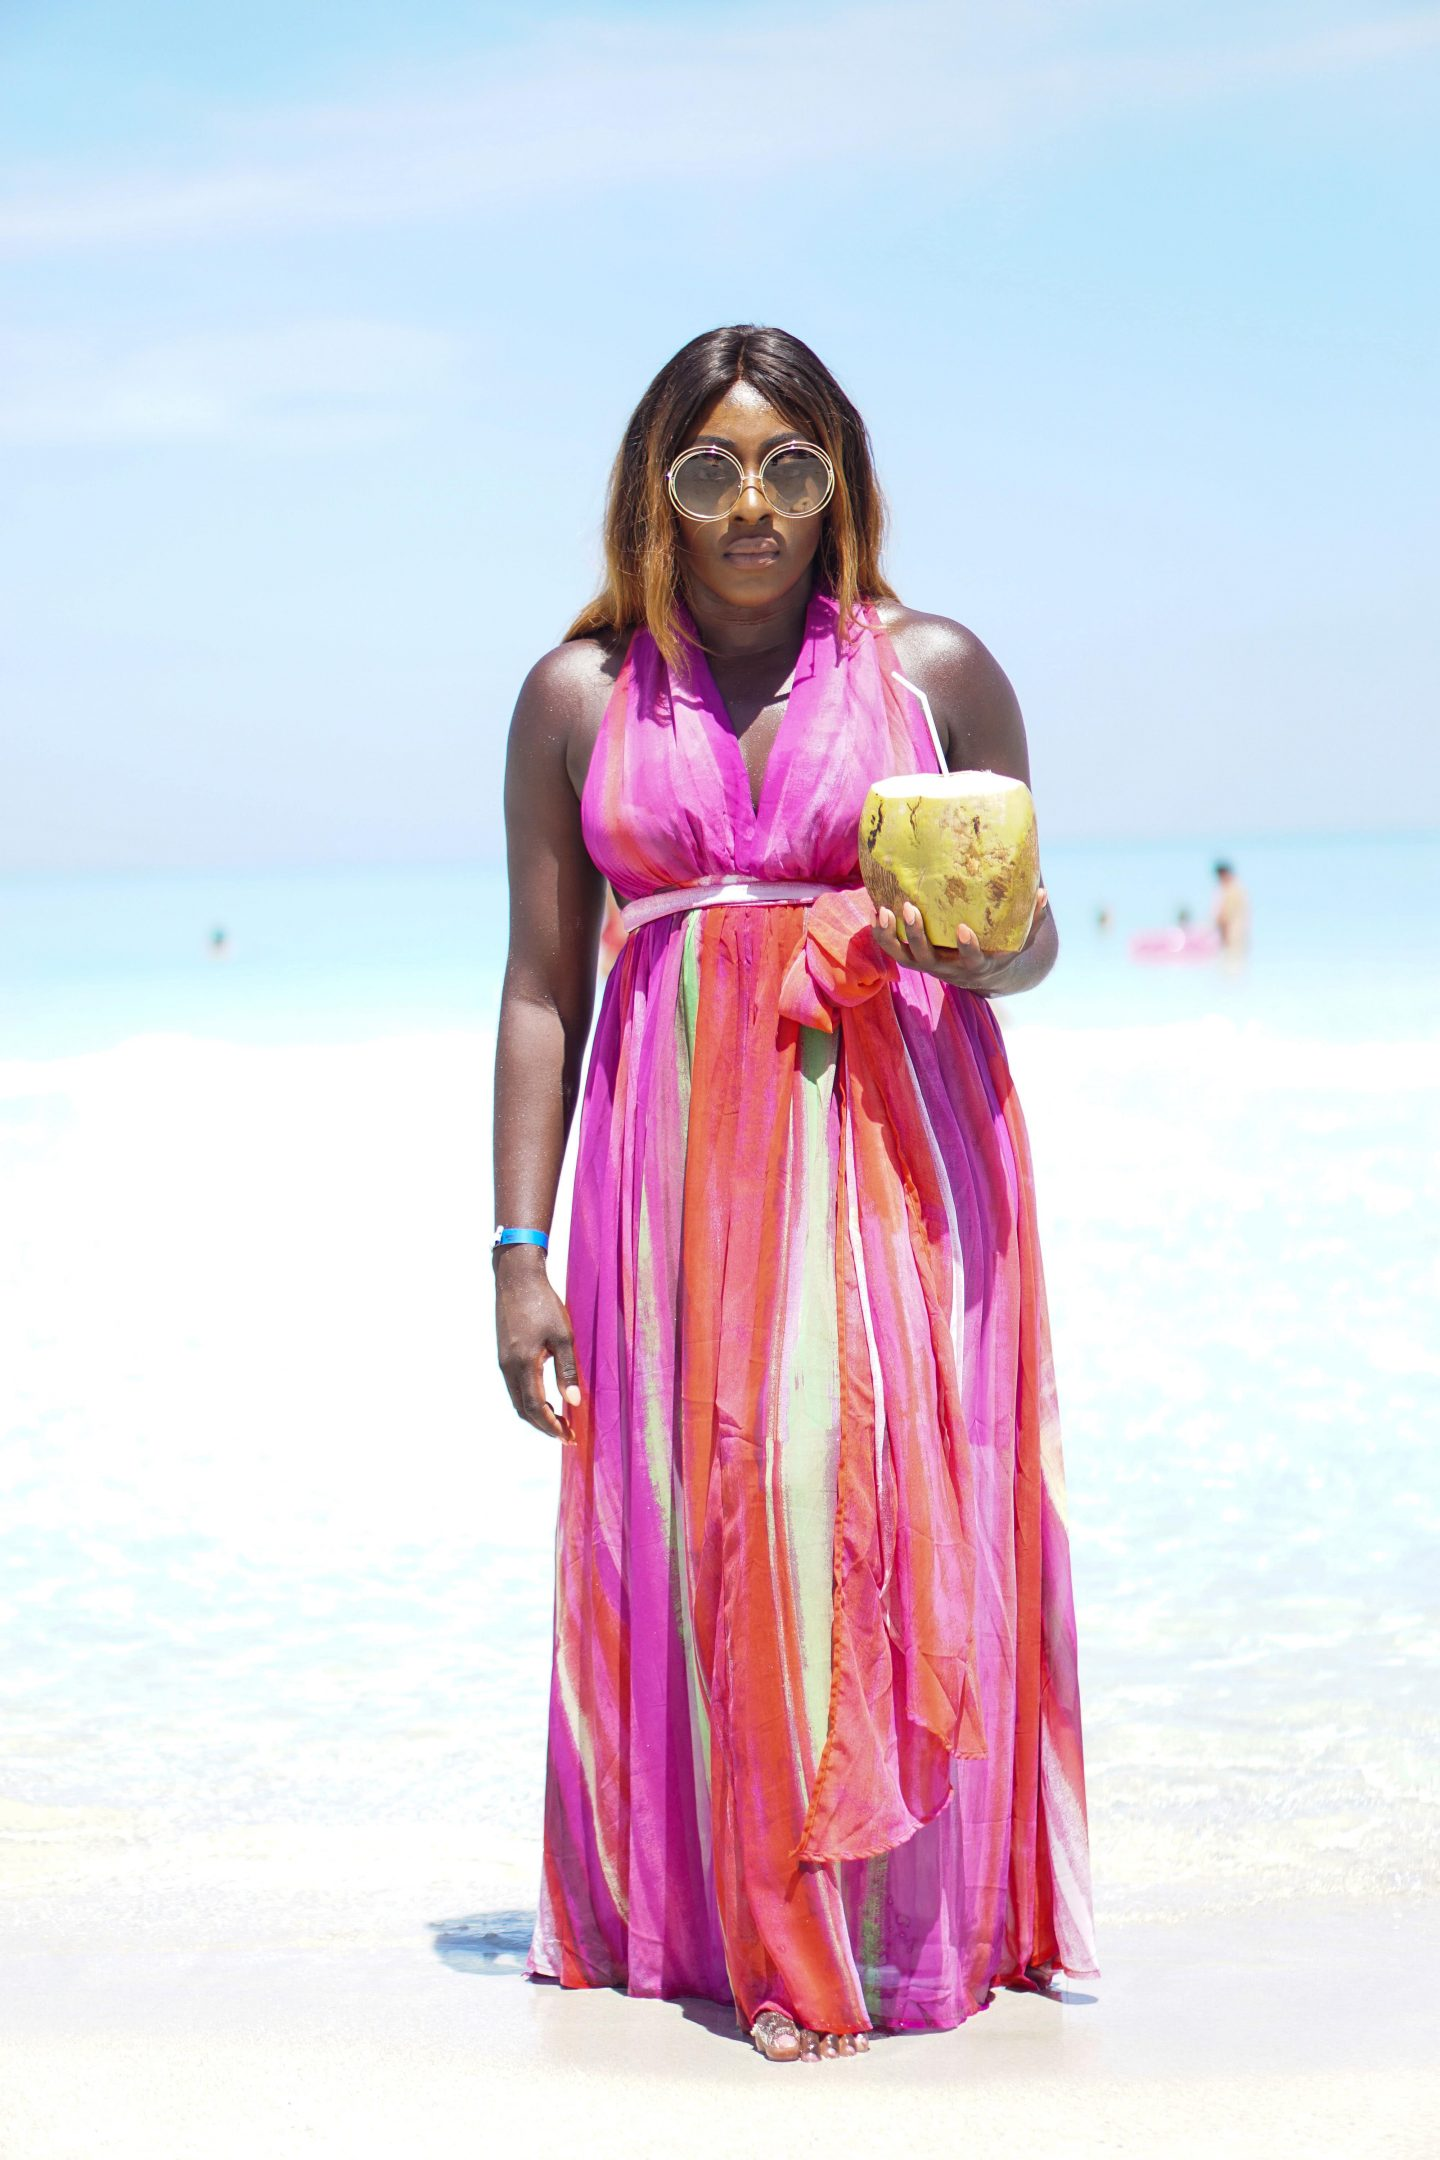 Varadero, Beach Dresses & Chloé Sunglasses 5 - ASOS Beach Dress back - Style and the Sass